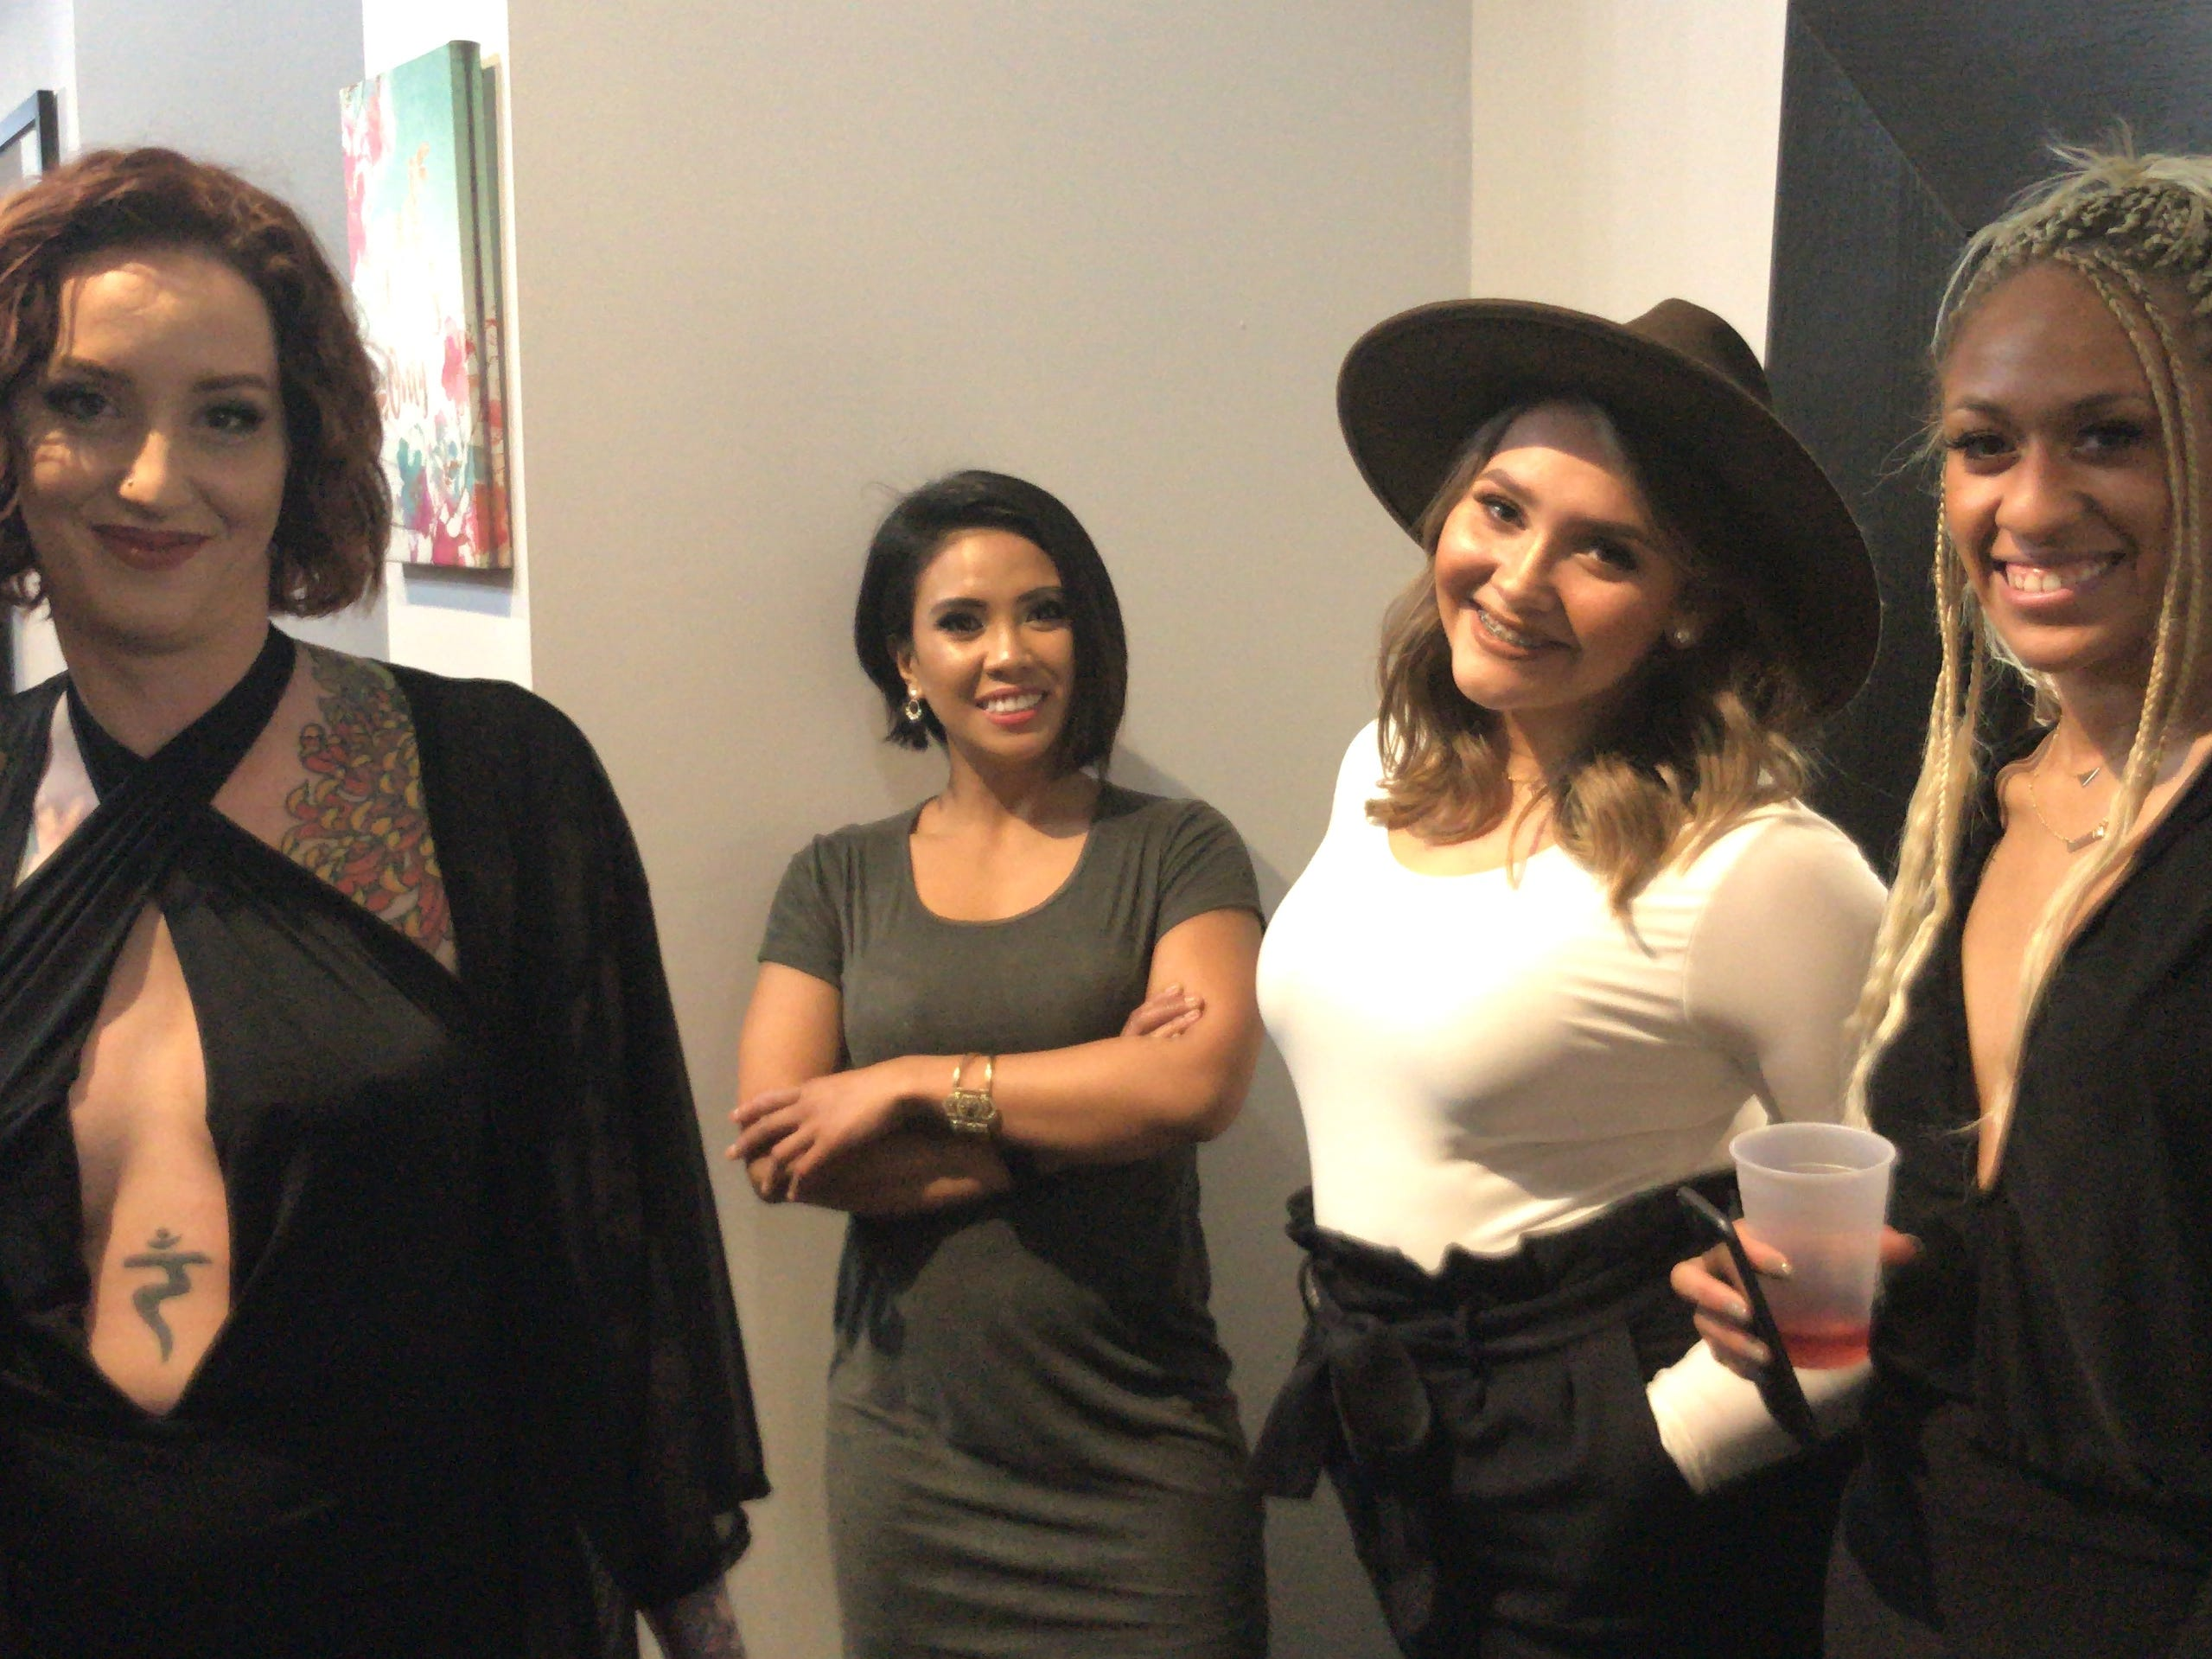 Stylists at Illustrated Beauty in Somerville include from left to right Amanda Fleming, Cielona Bocco, Hayley Terrell and Zhane Sweeney.